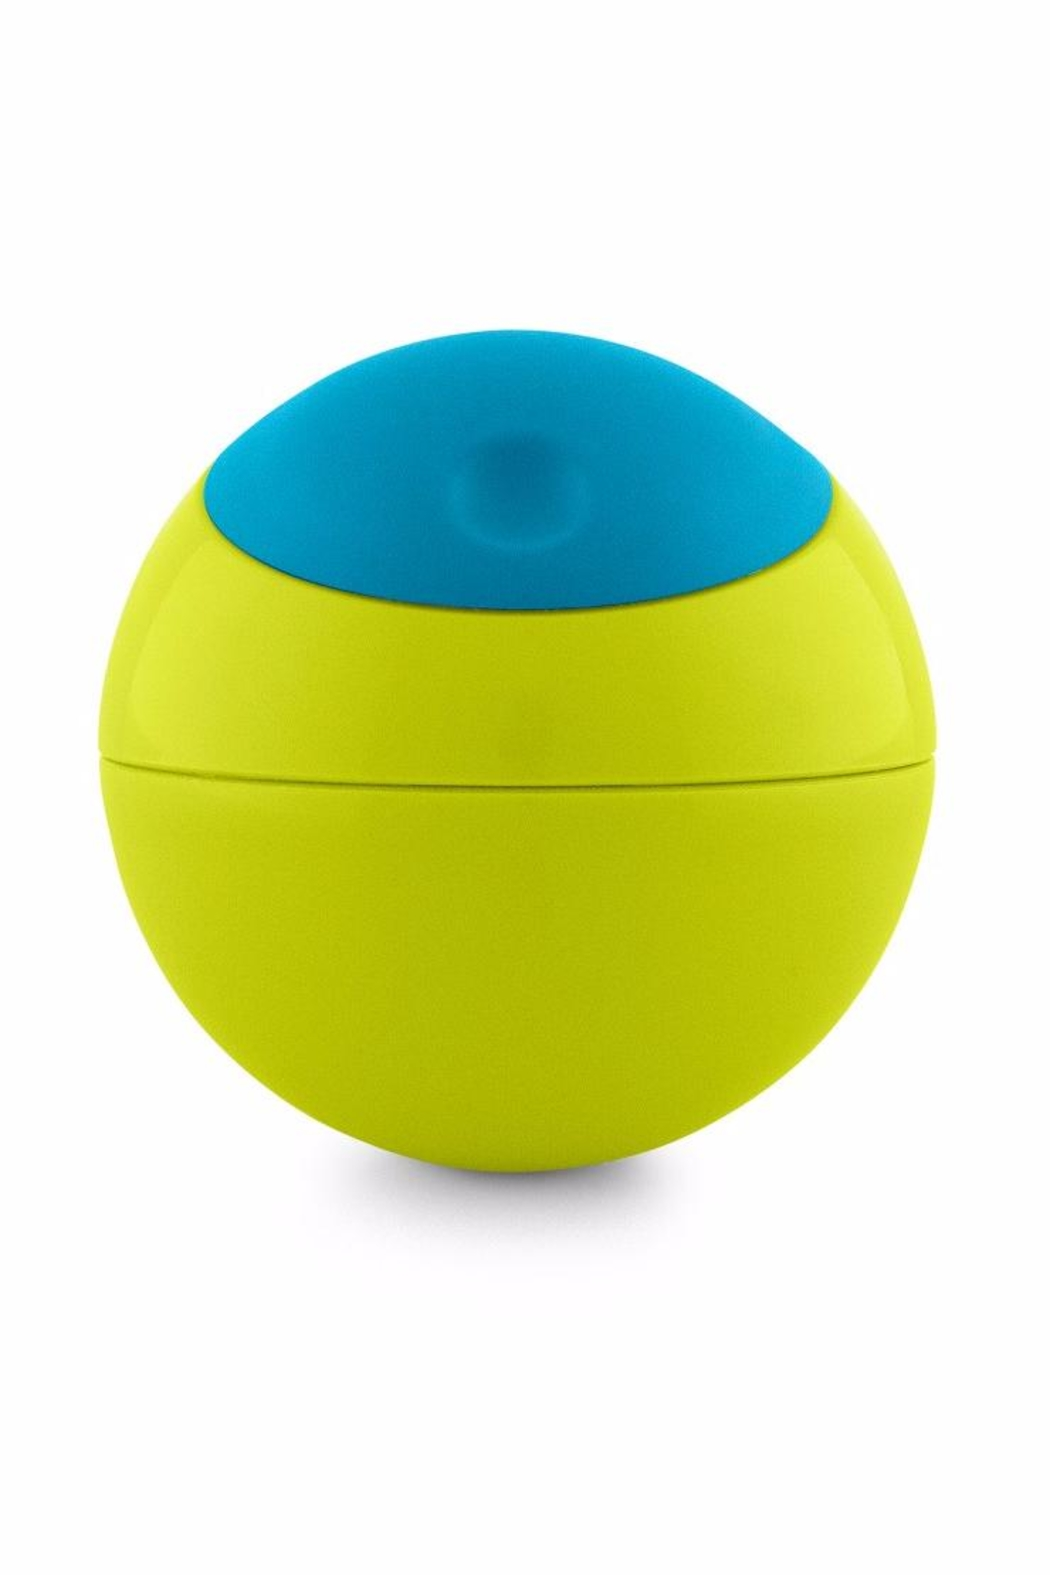 boon by Tomy Snack Ball - Blue/green - Main Image